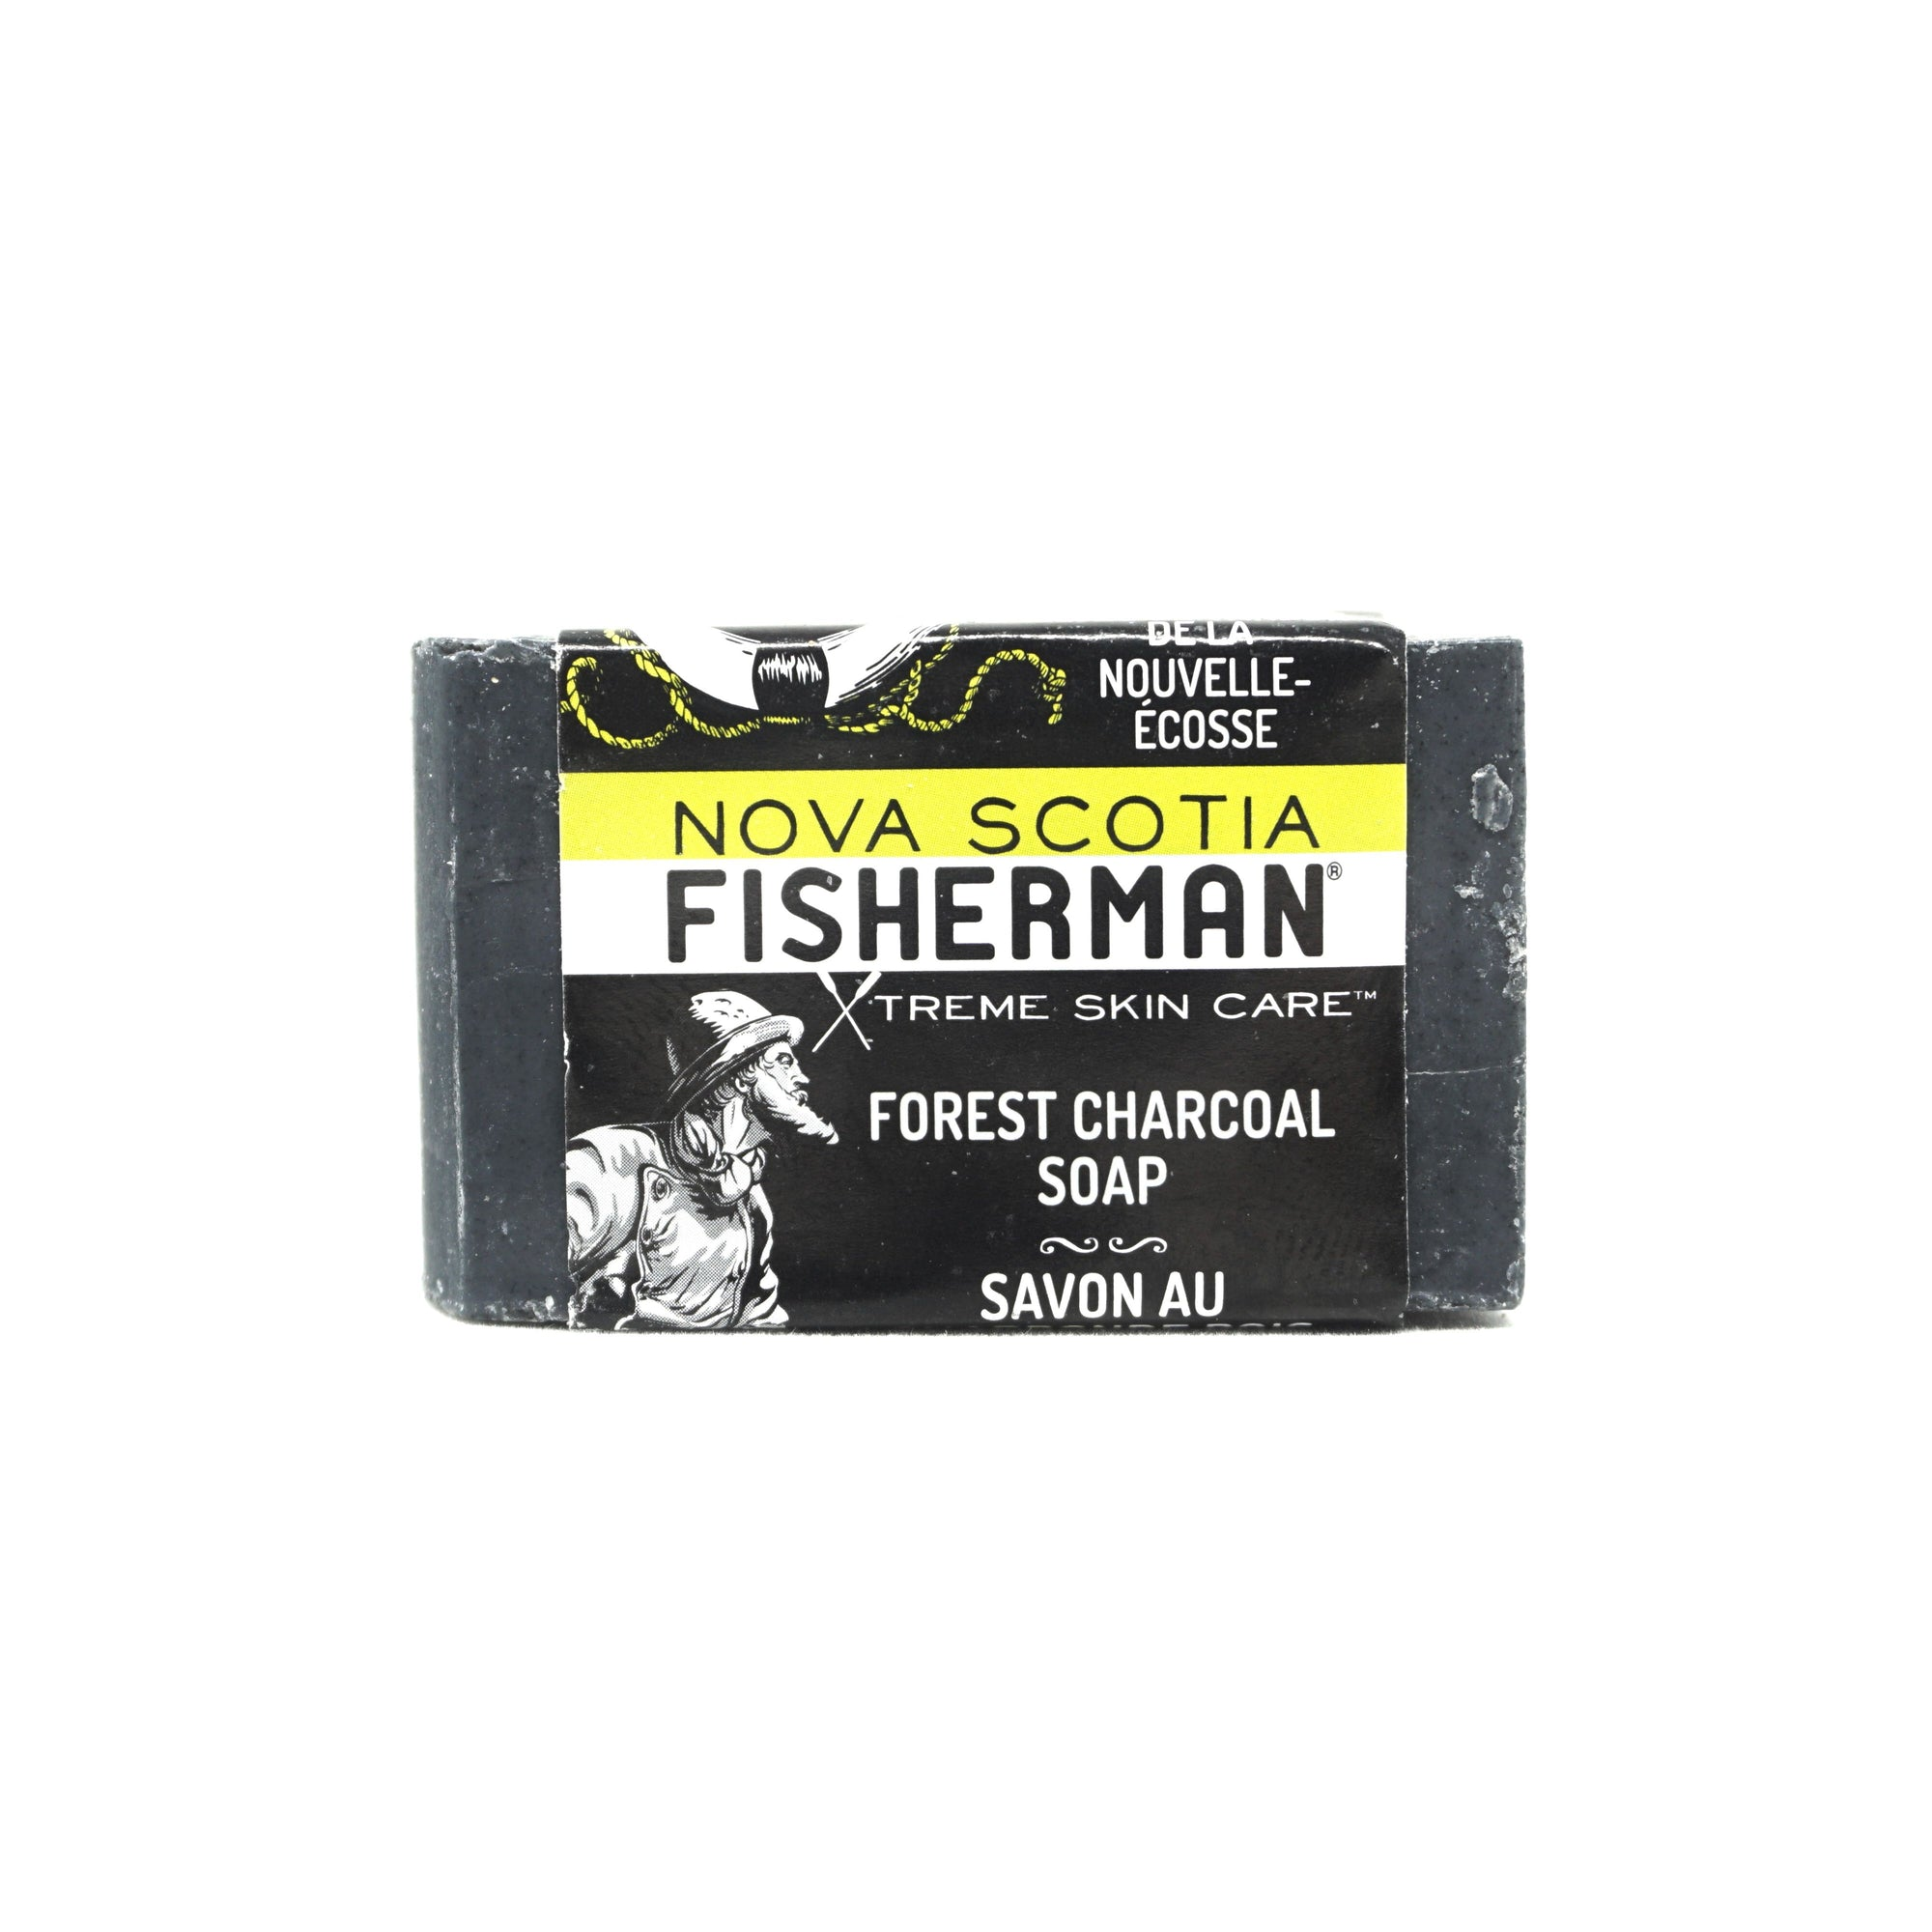 Hand & Face Soap Bar - Forest Charcoal - Nova Scotia Fisherman Sea Kelp Skincare